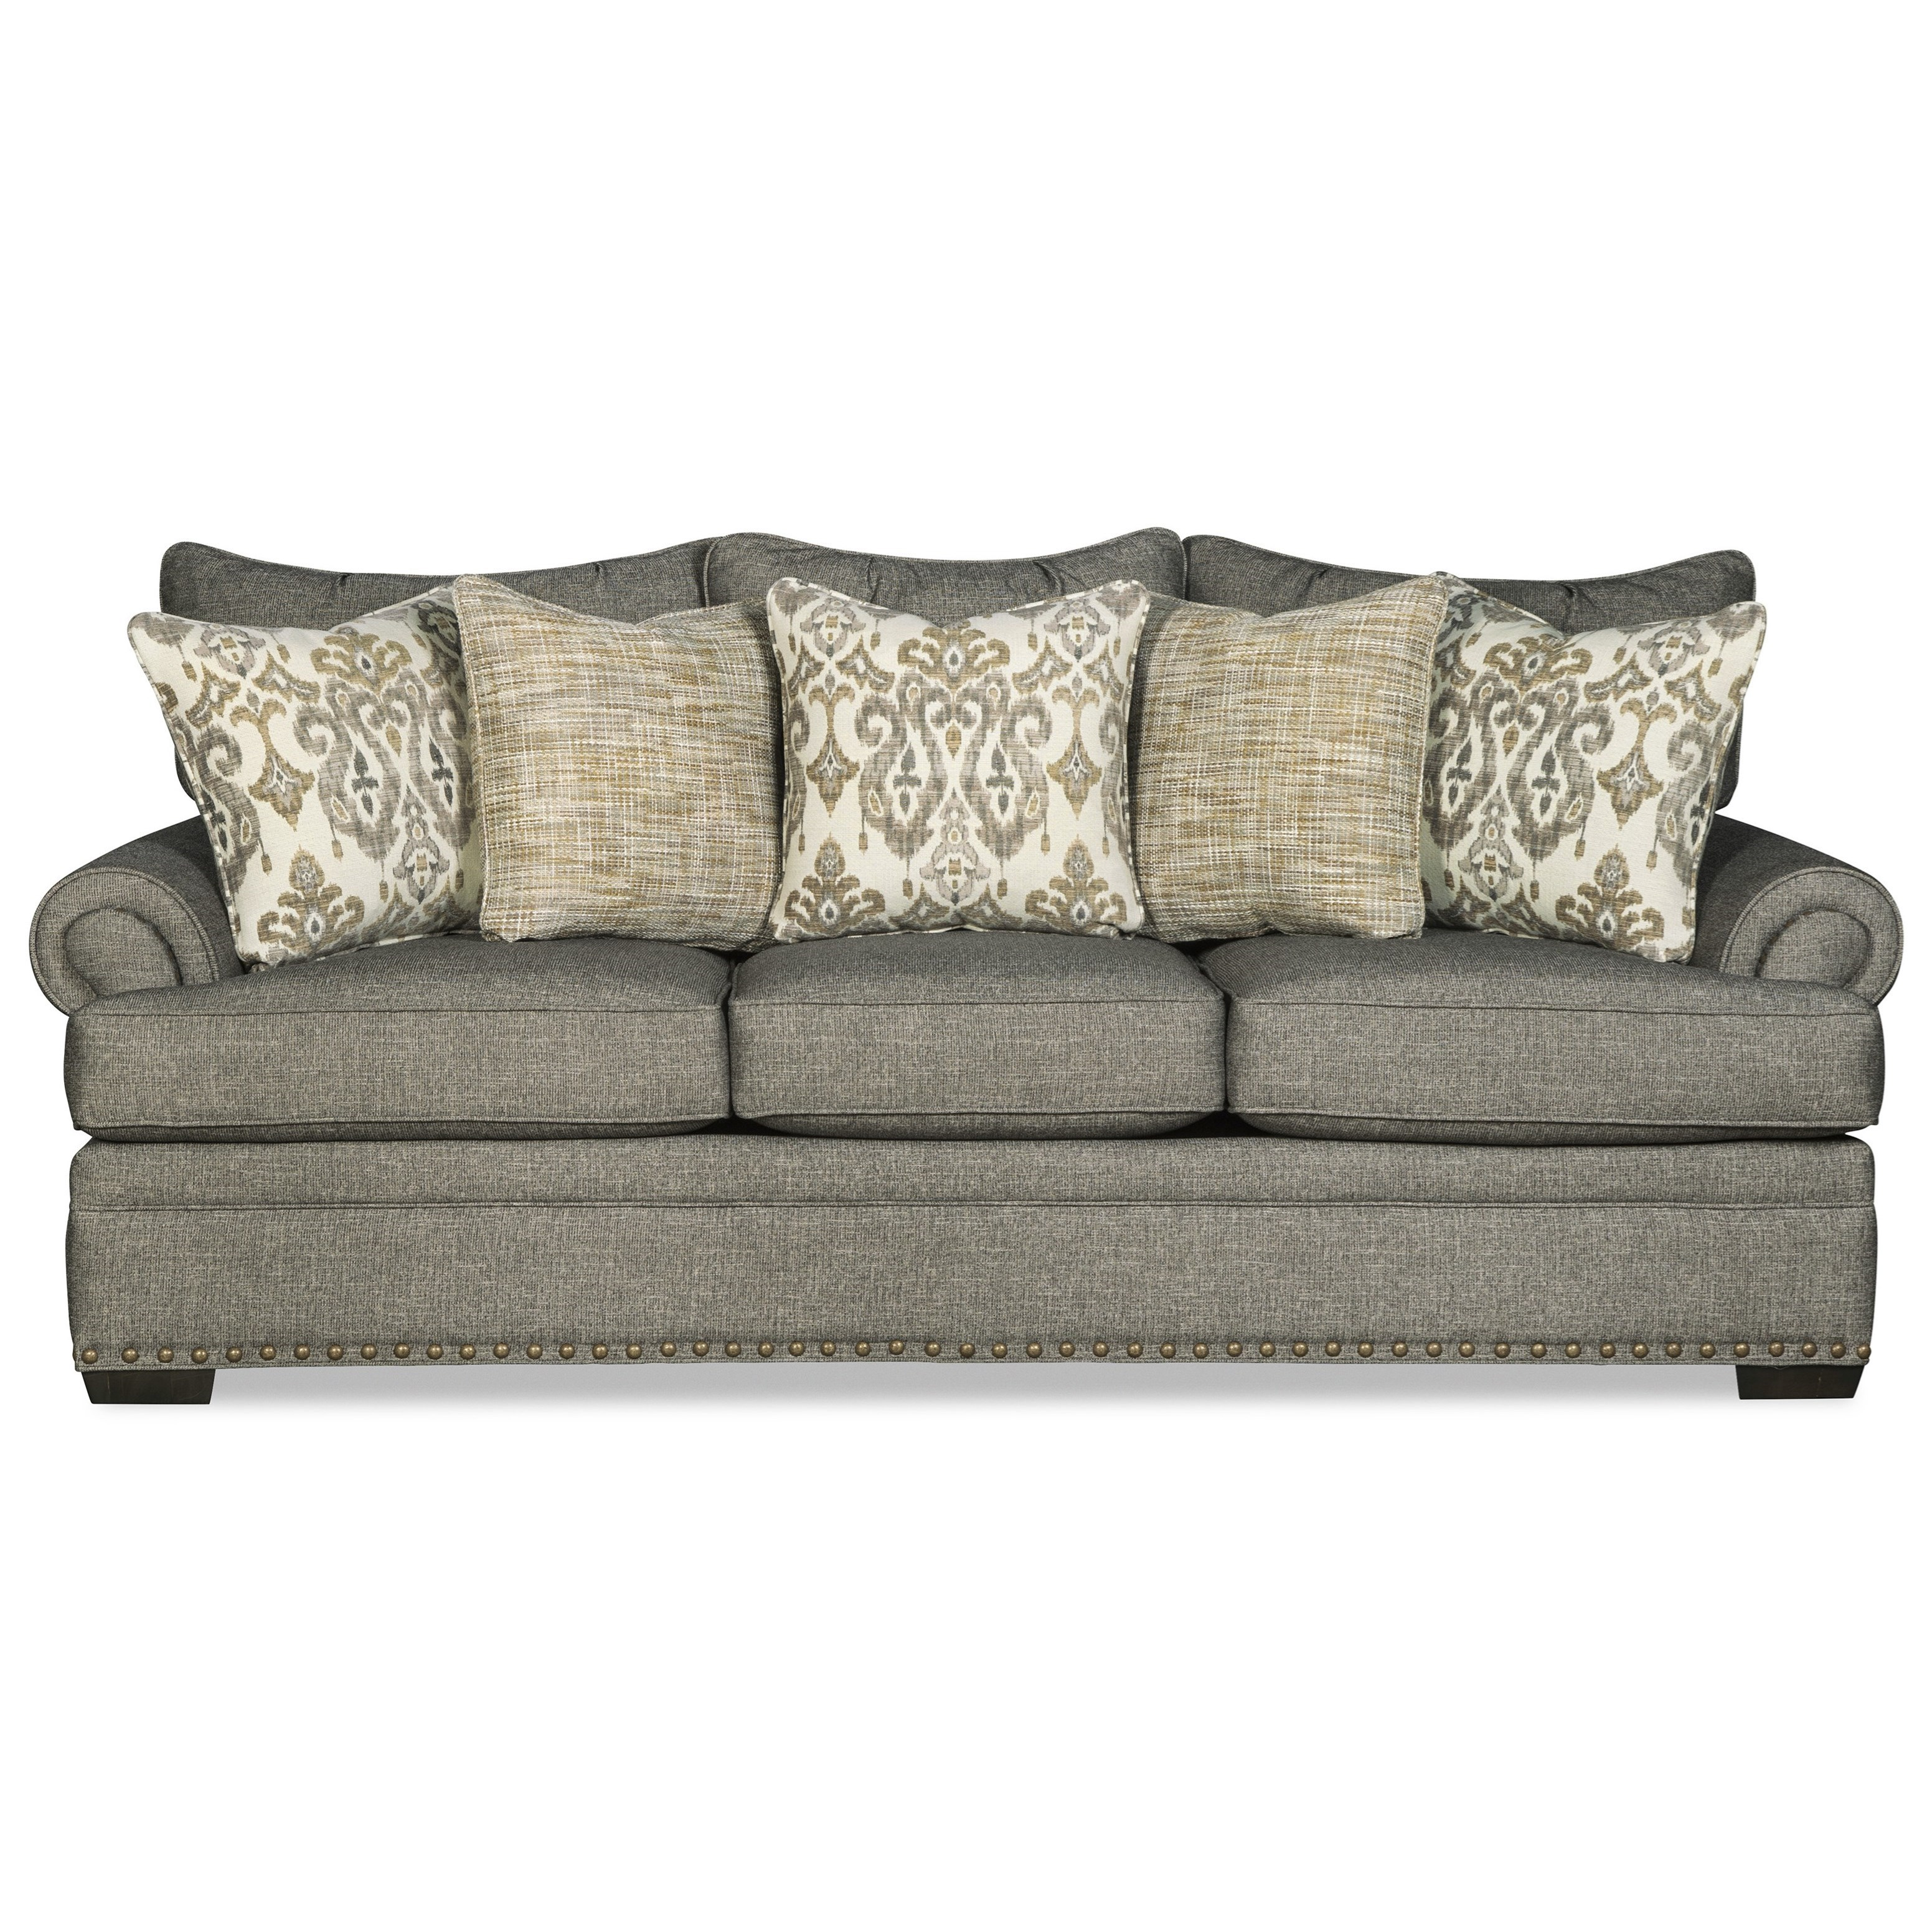 701650BD Sofa by Craftmaster at Lagniappe Home Store